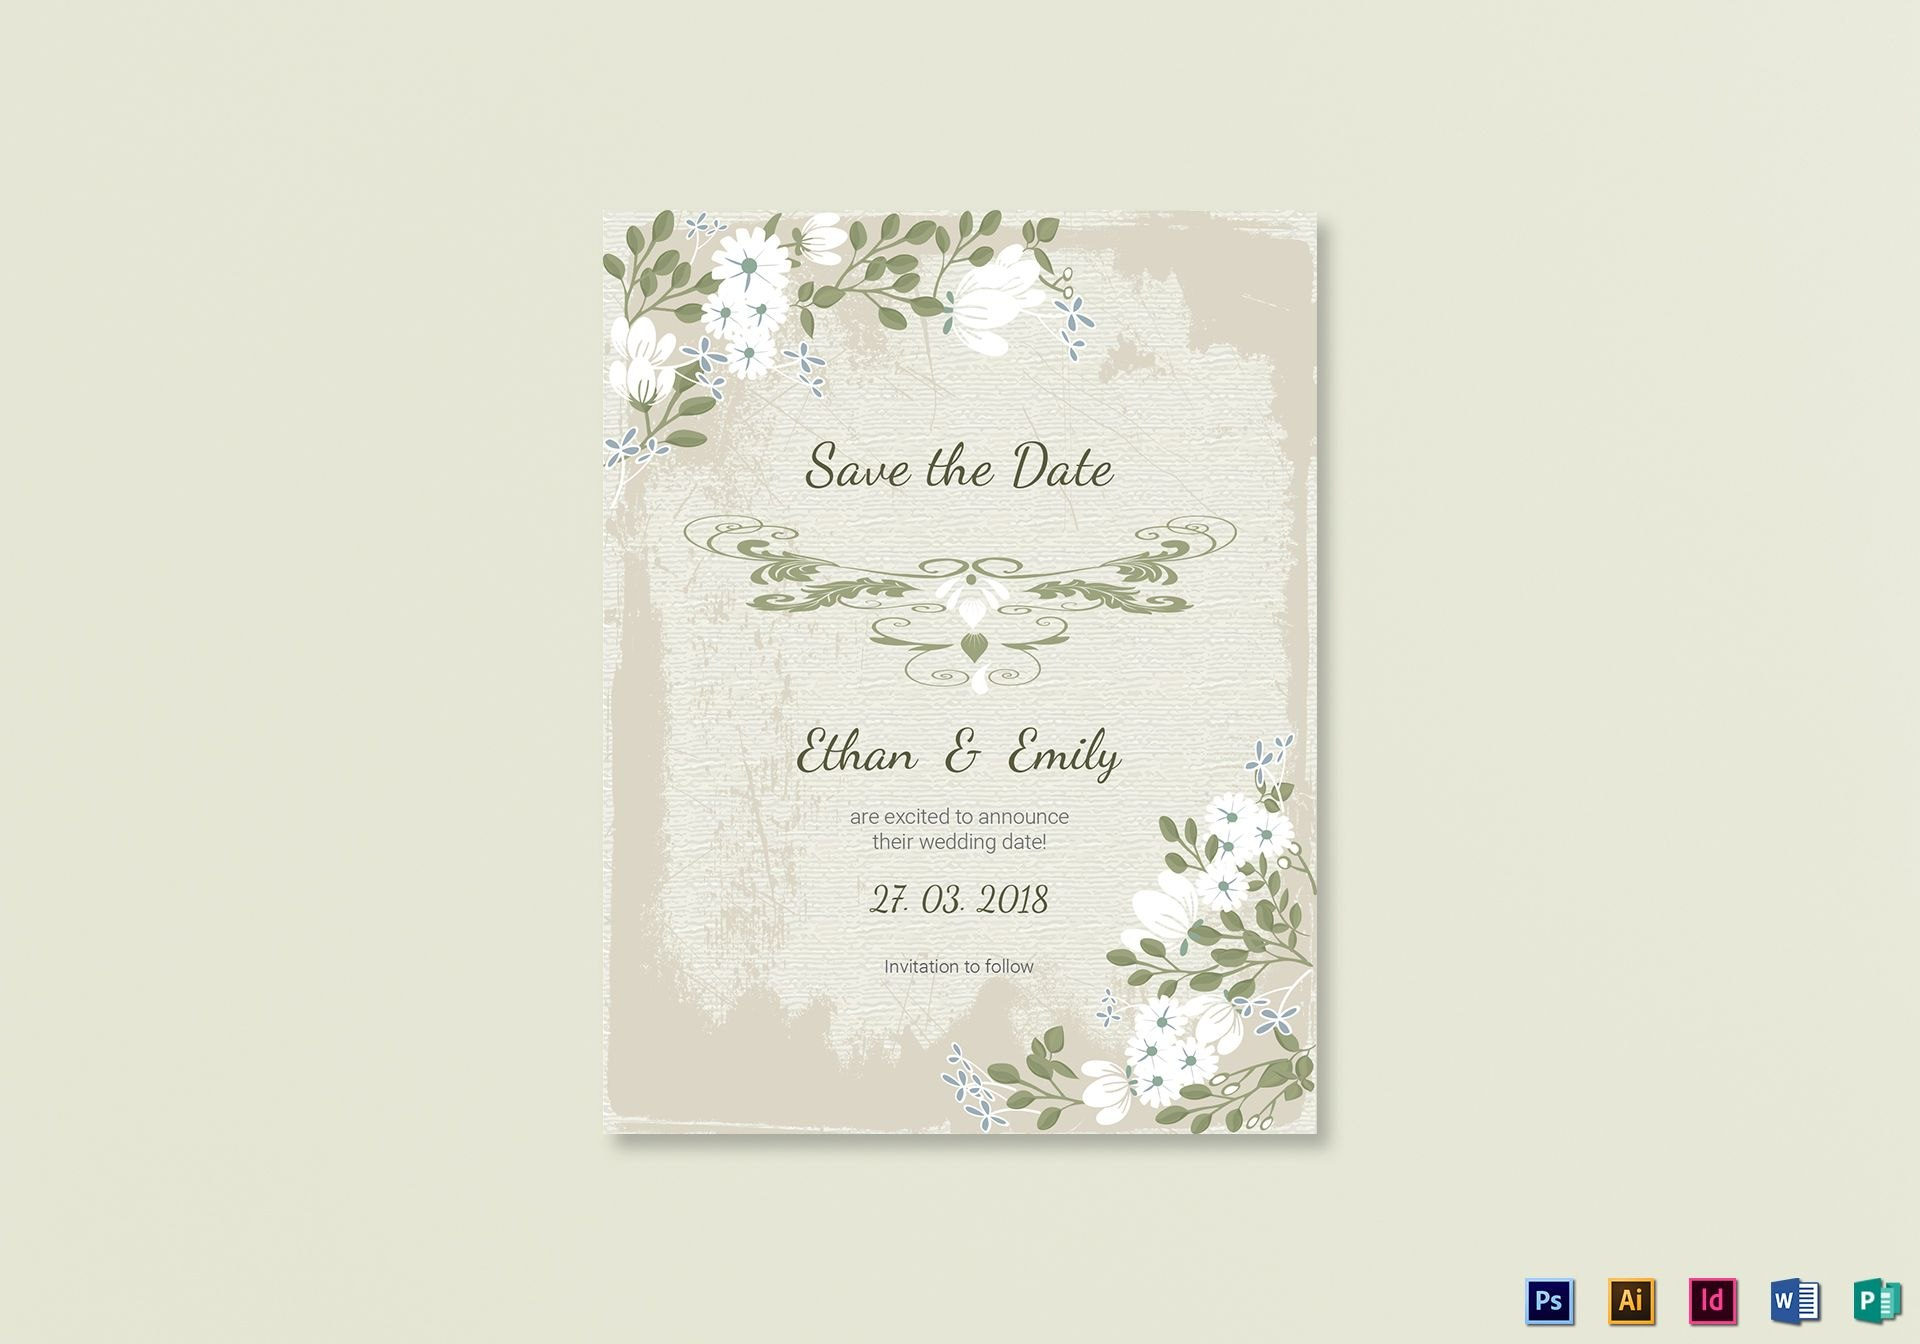 Vintage Save The Date Card Template In Psd Word Publisher Throughout Save The Date Cards Templates